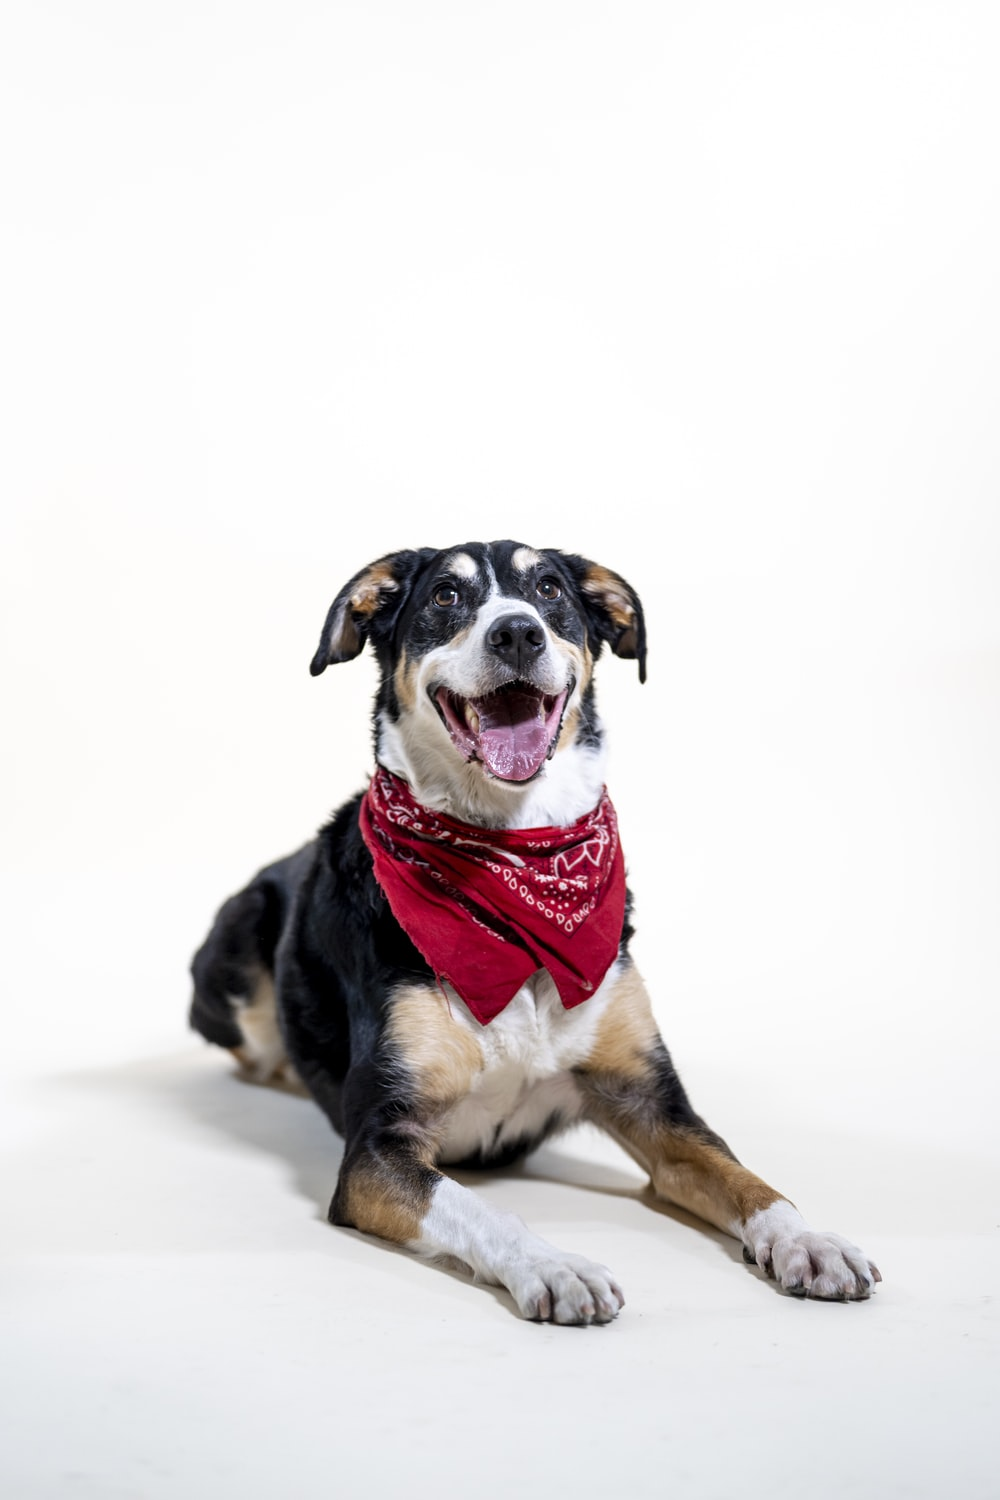 black white and brown short coated dog